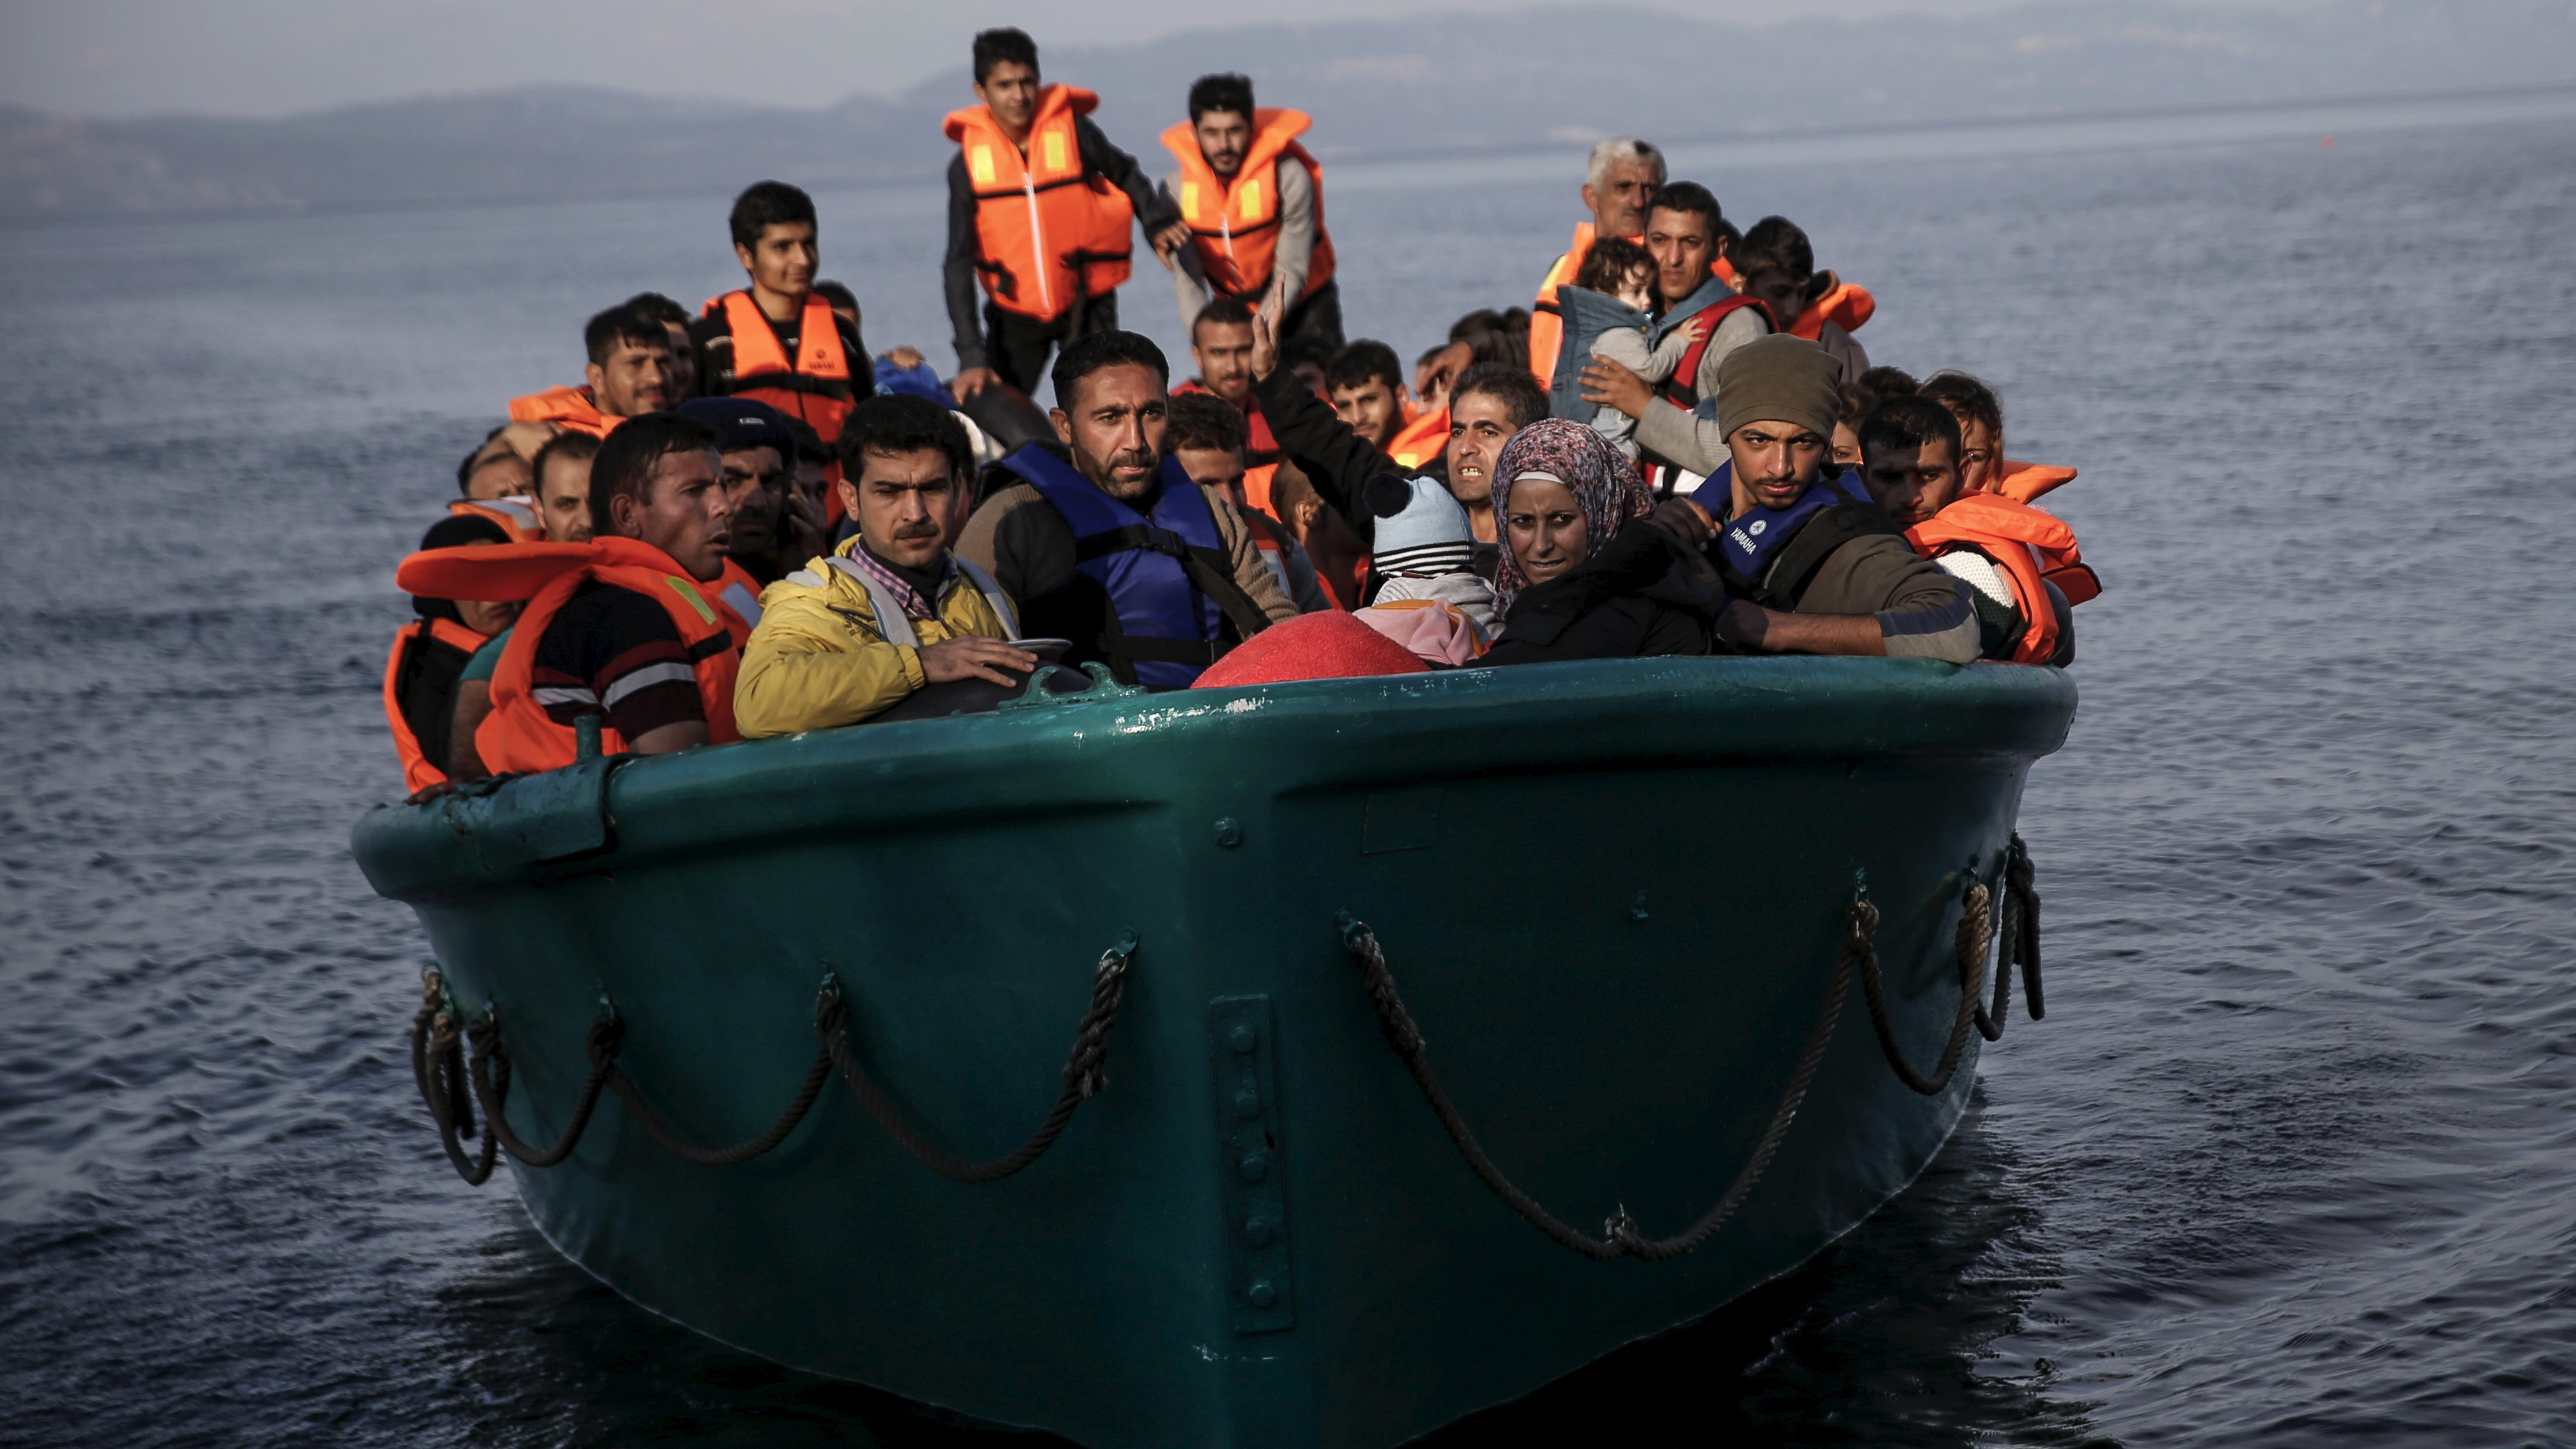 Refugees and migrants arrive on an overcrowded boat on the Greek island of Lesbos